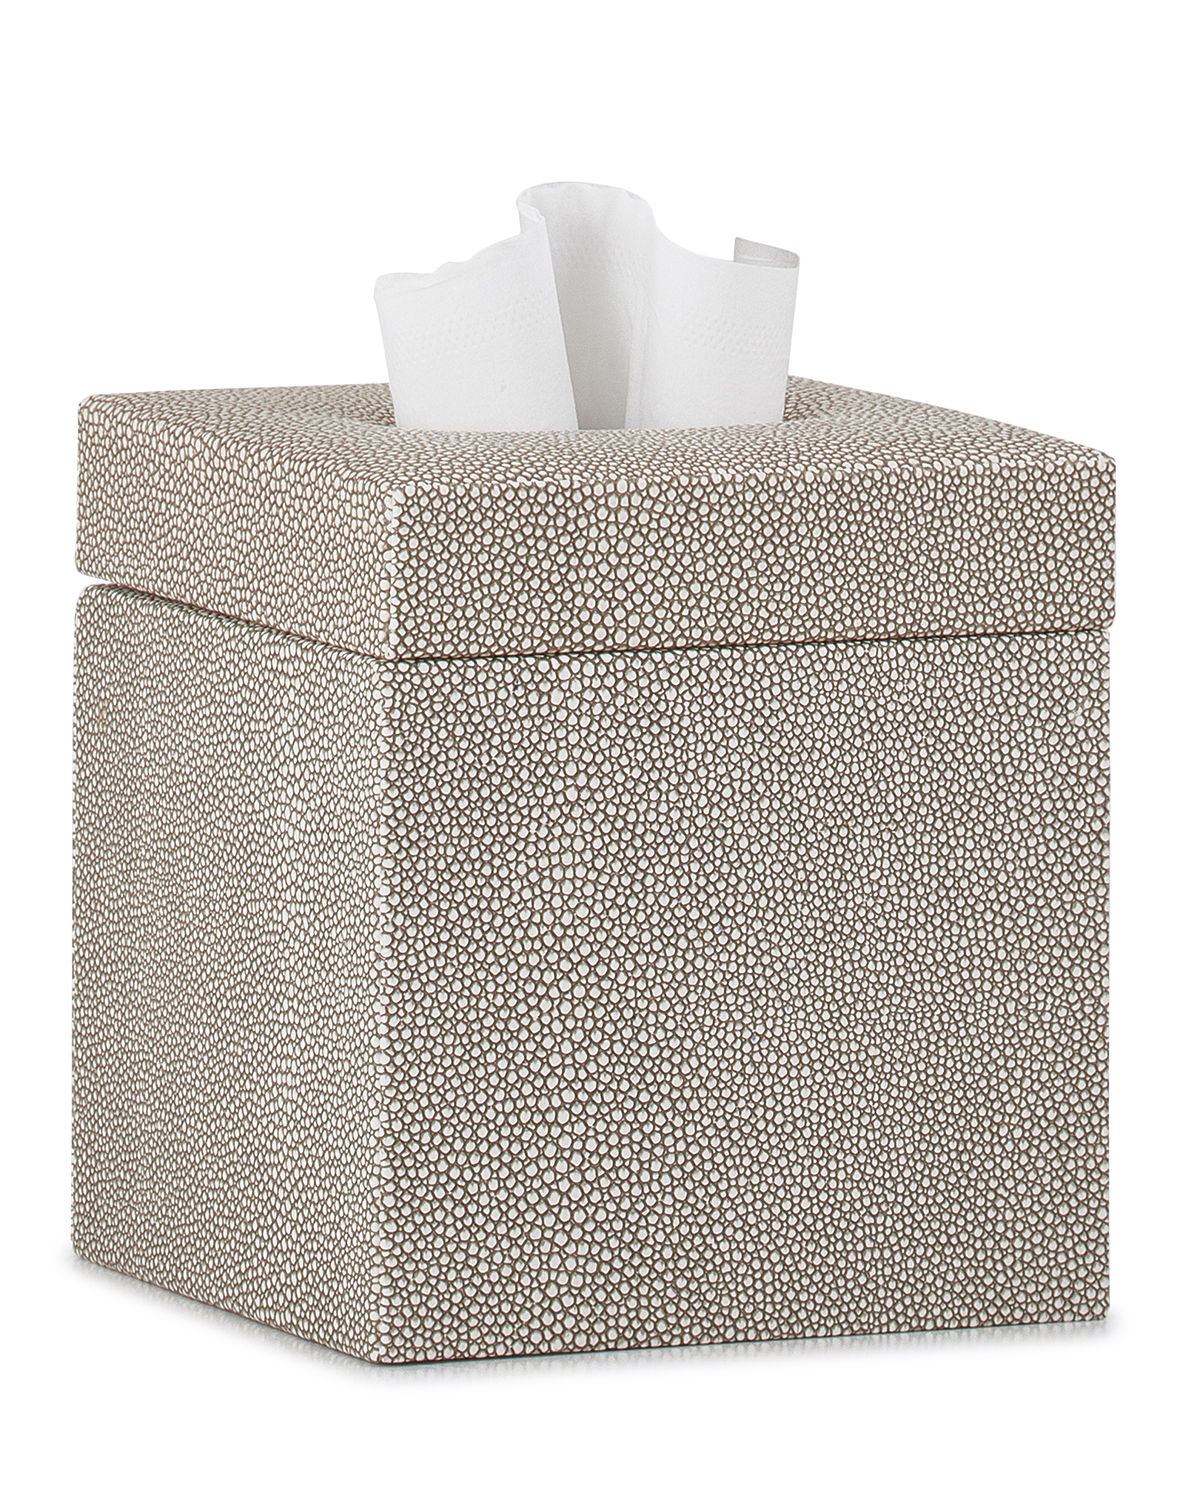 Labrazel Raye Tissue Box Cover